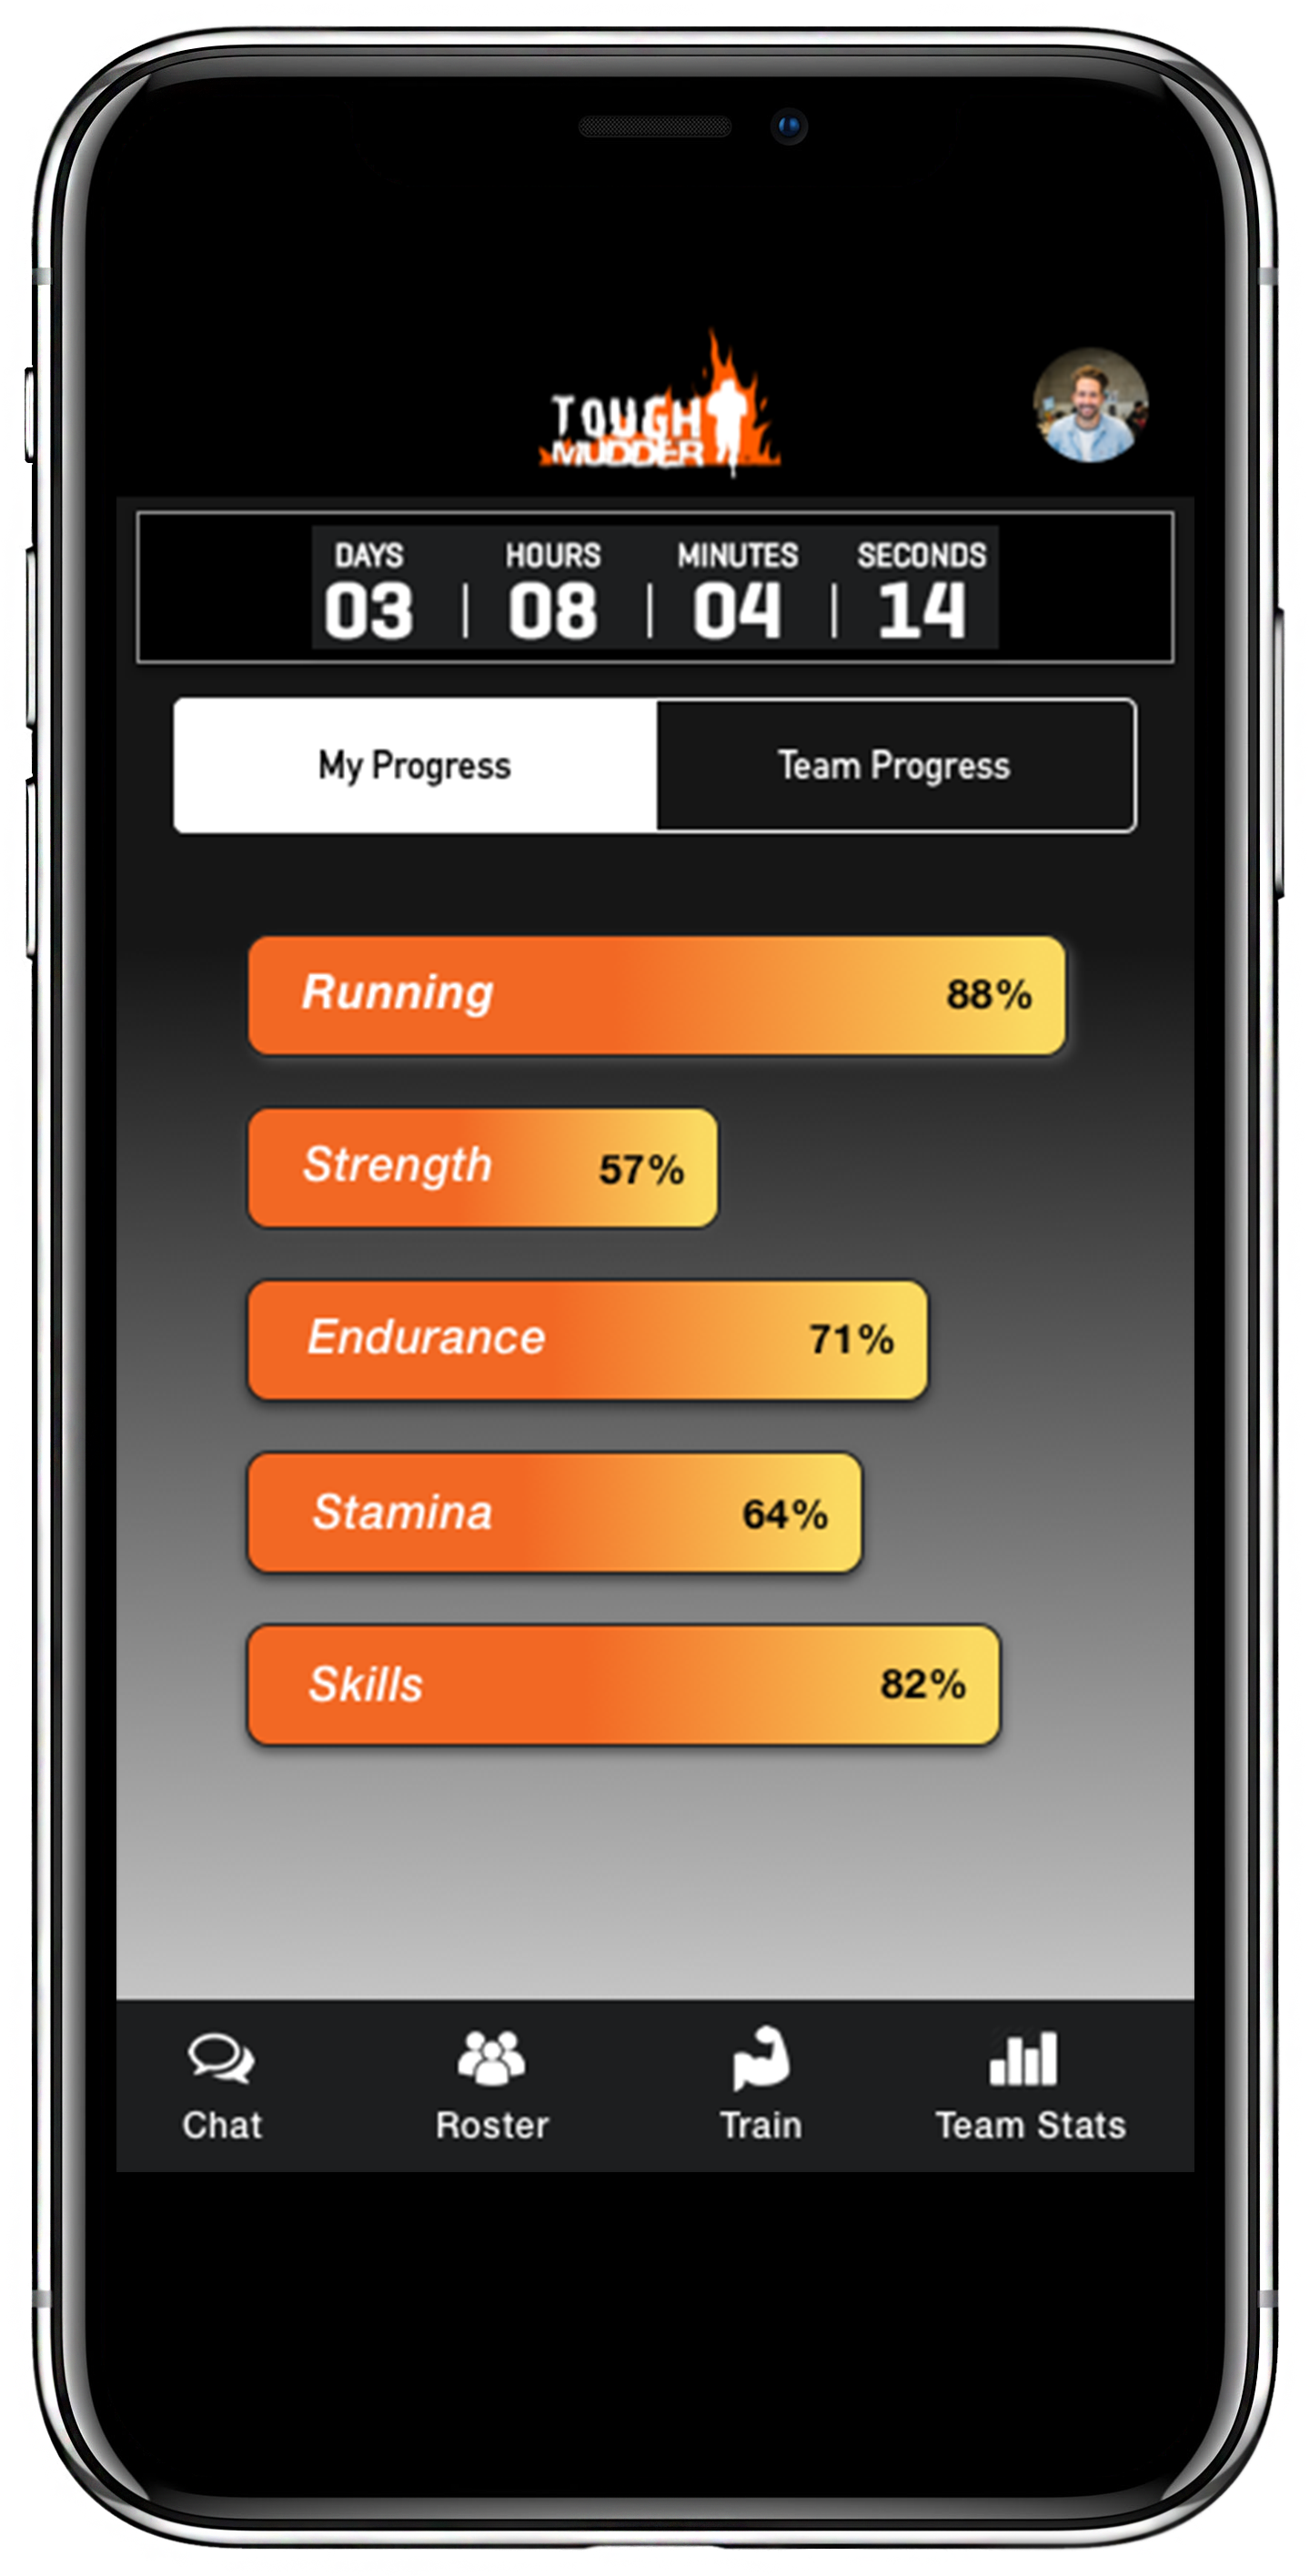 UX Design High Fidelity comp of mobile screen for Tough Mudder application